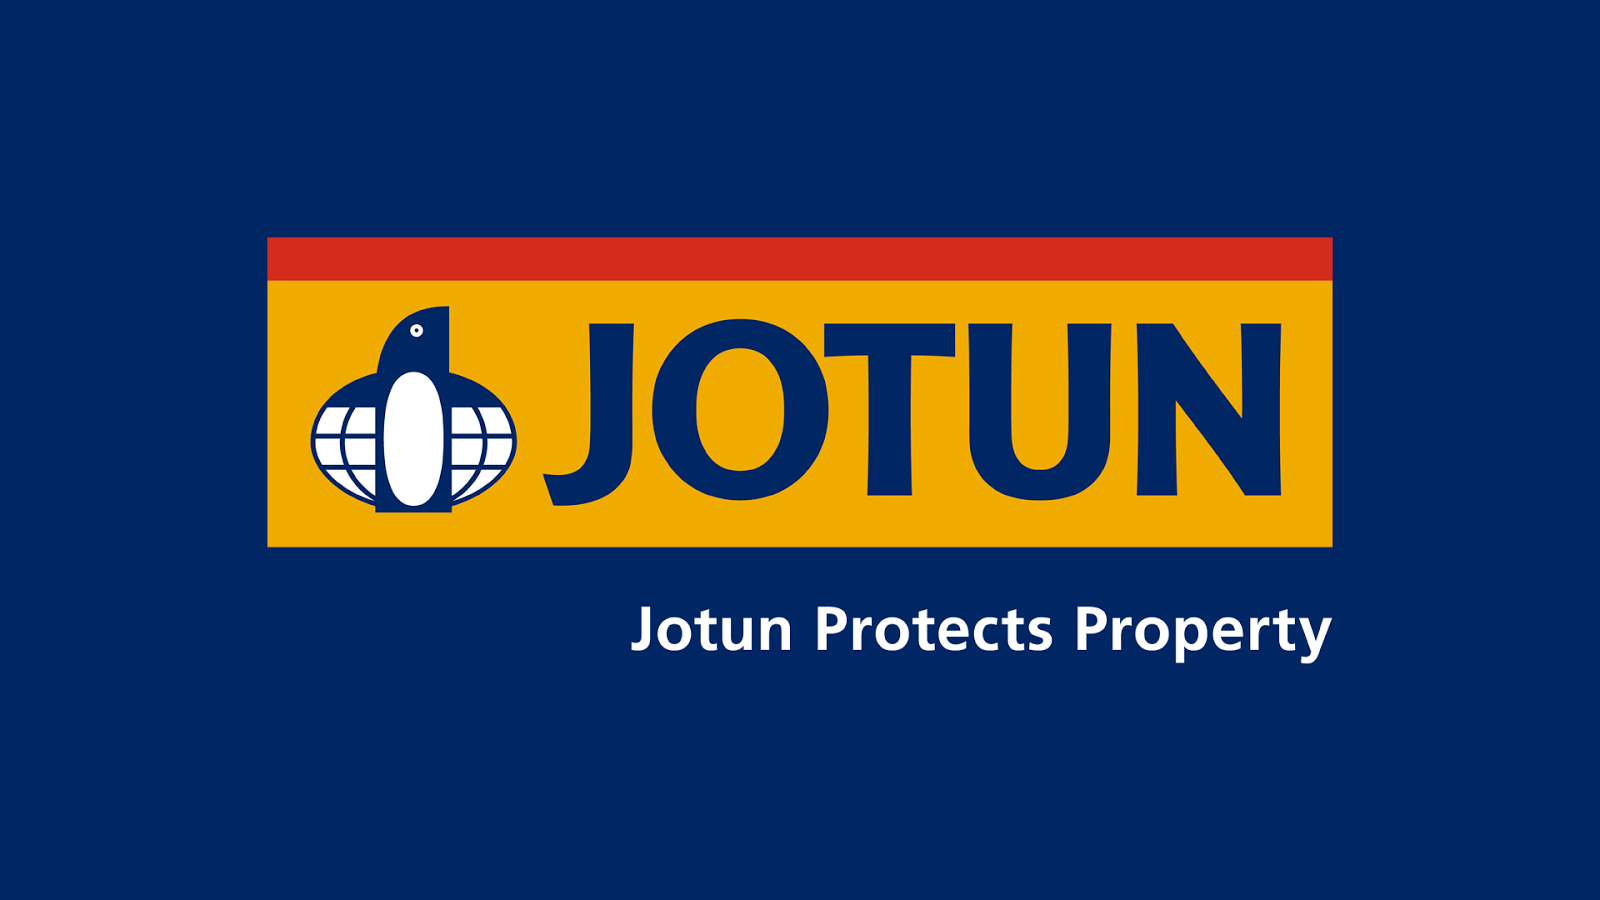 Jotun-logo-with-payoff-on-a-blue-background-1920x1080_tcm55-94747